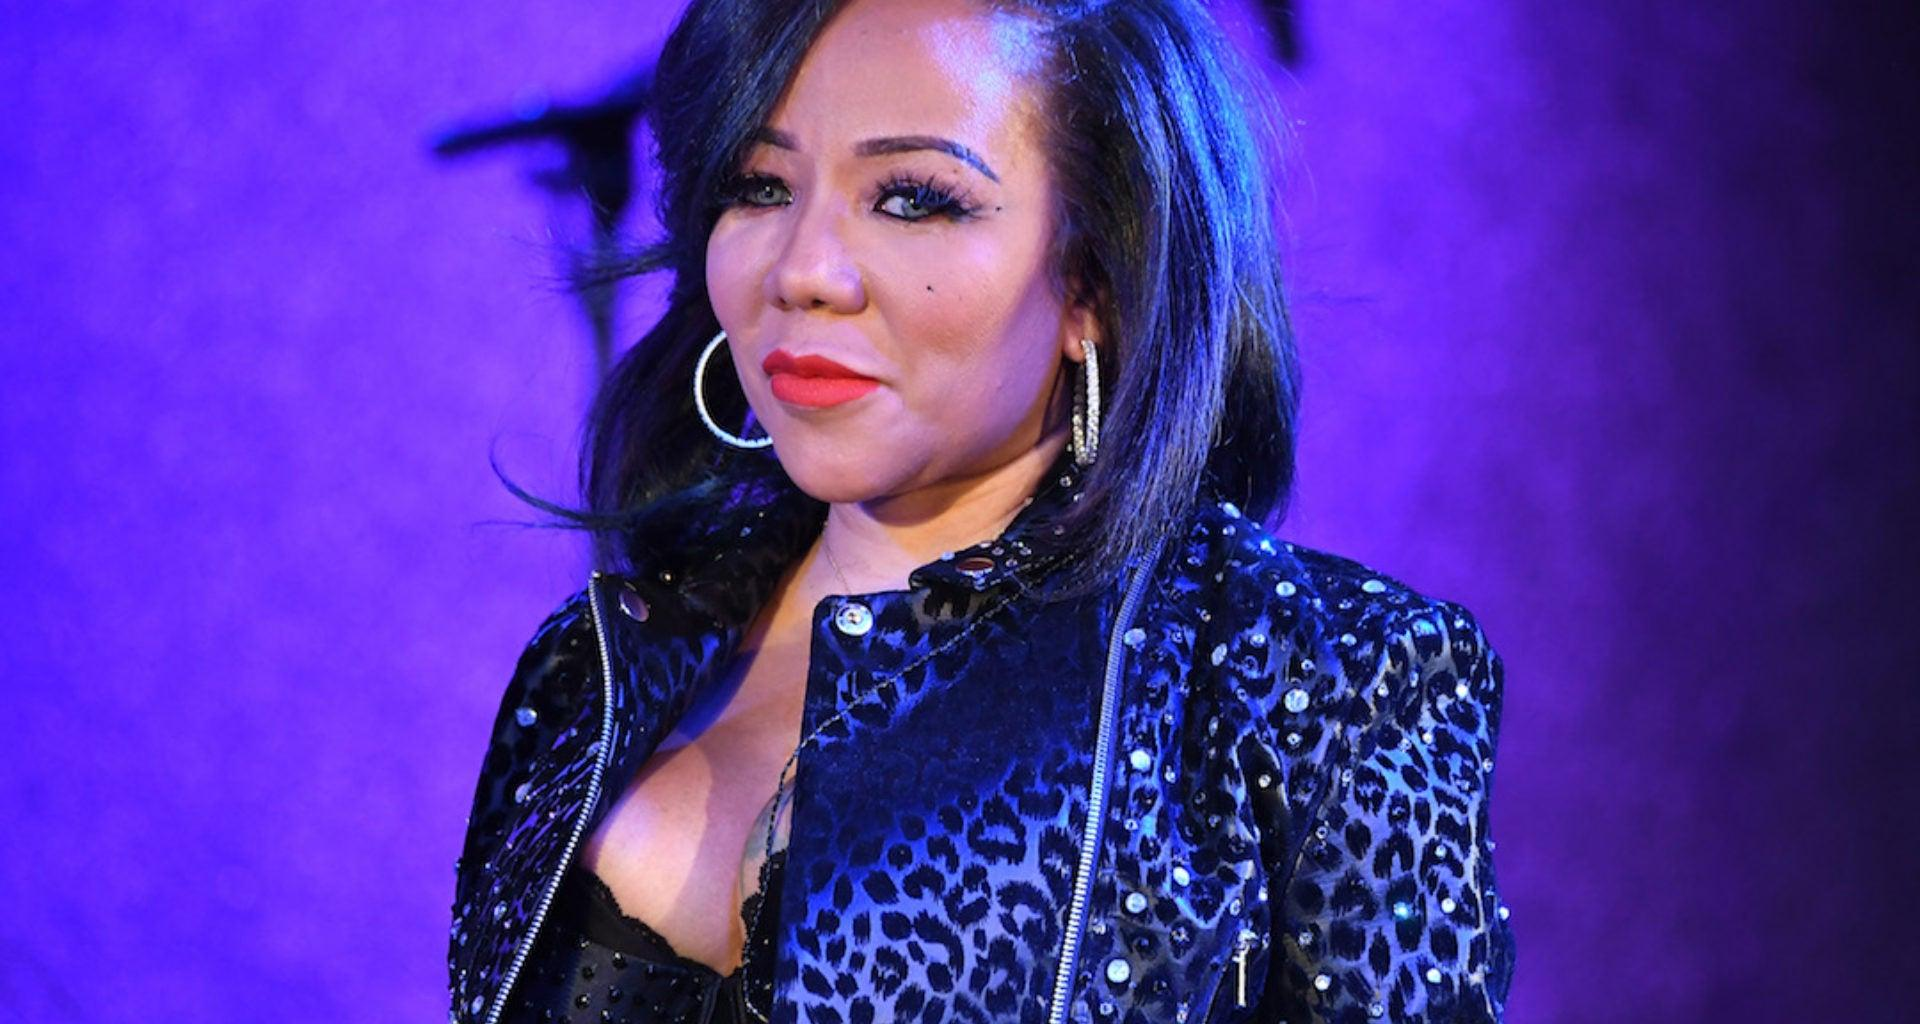 Tiny Harris' Runway Look Has Fans Telling Her She Looks Bomb - Check Out The Pics